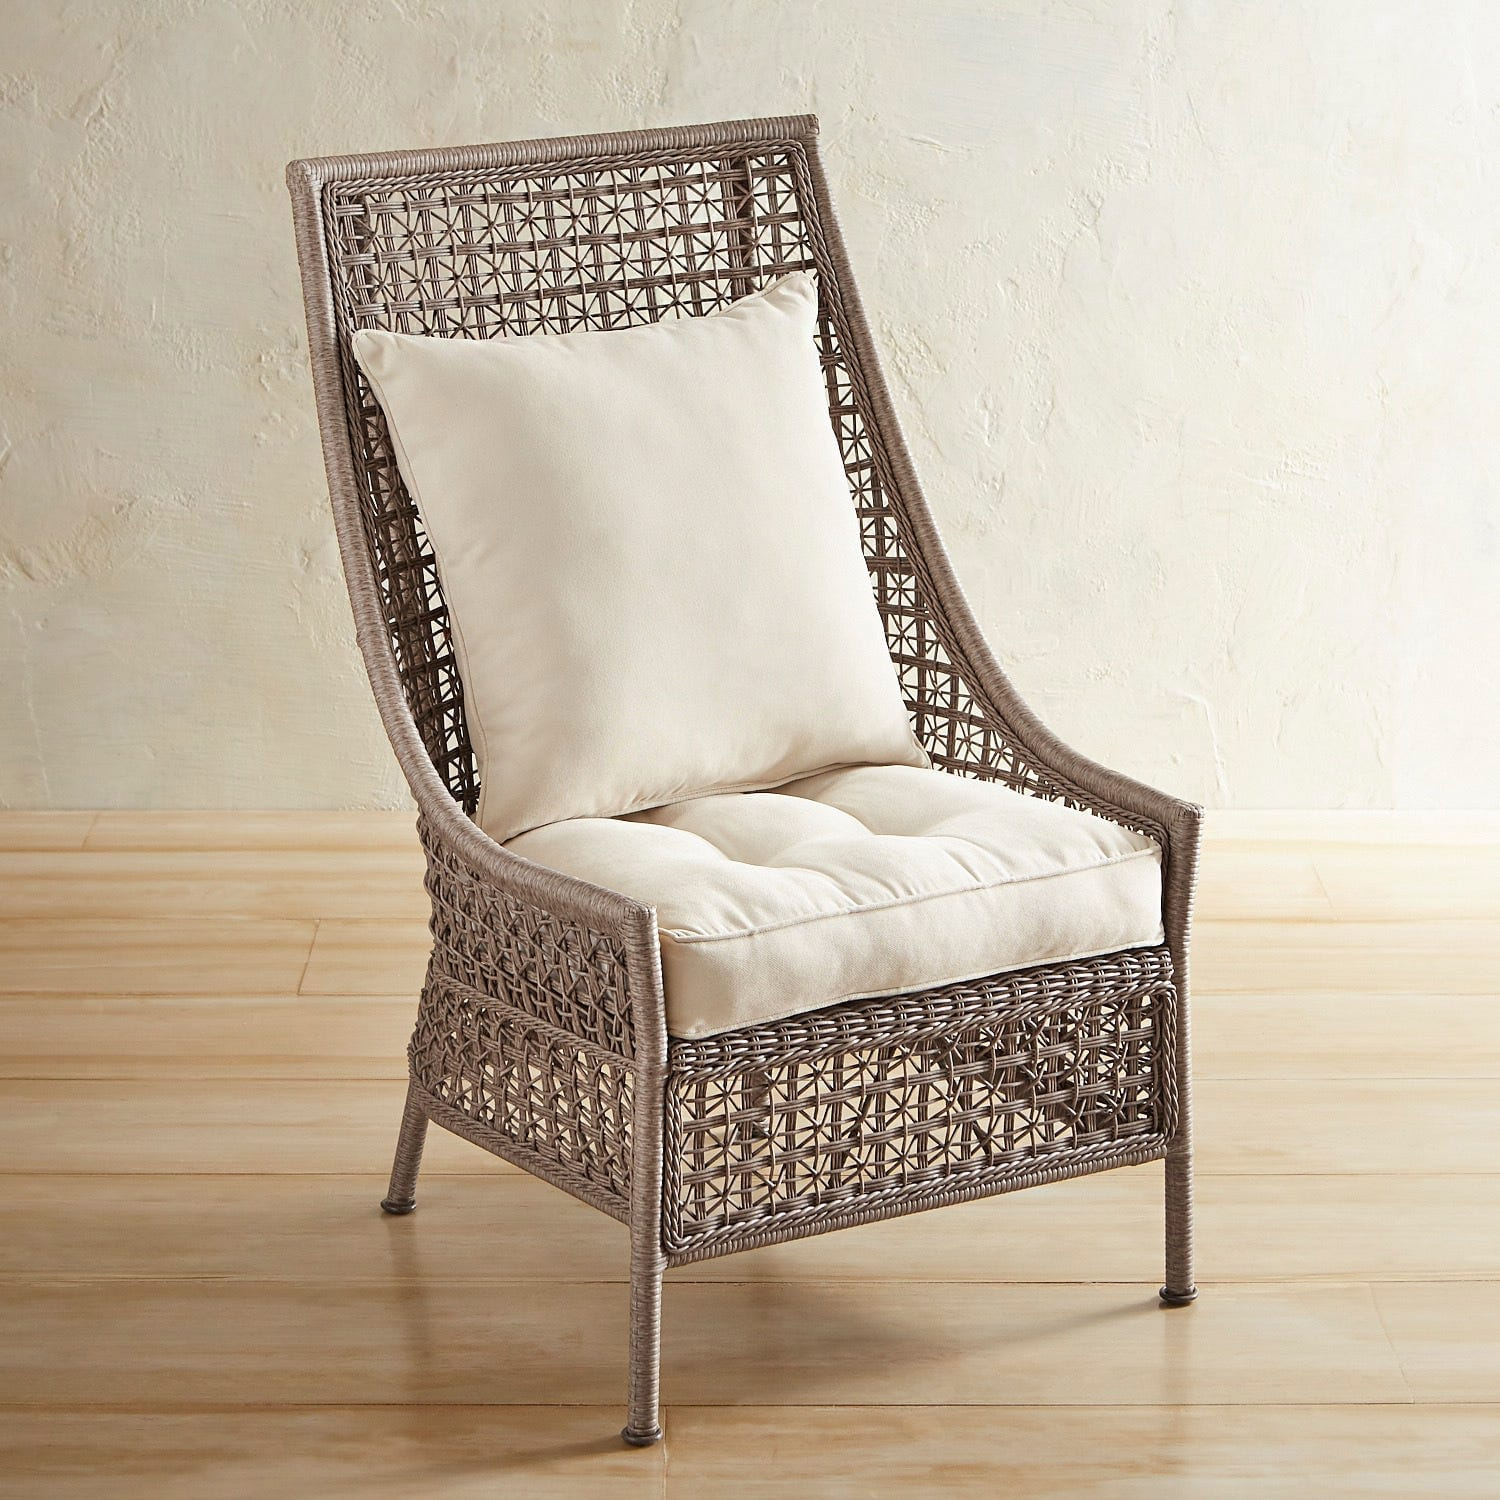 Deluxe Back Outdoor patio chair